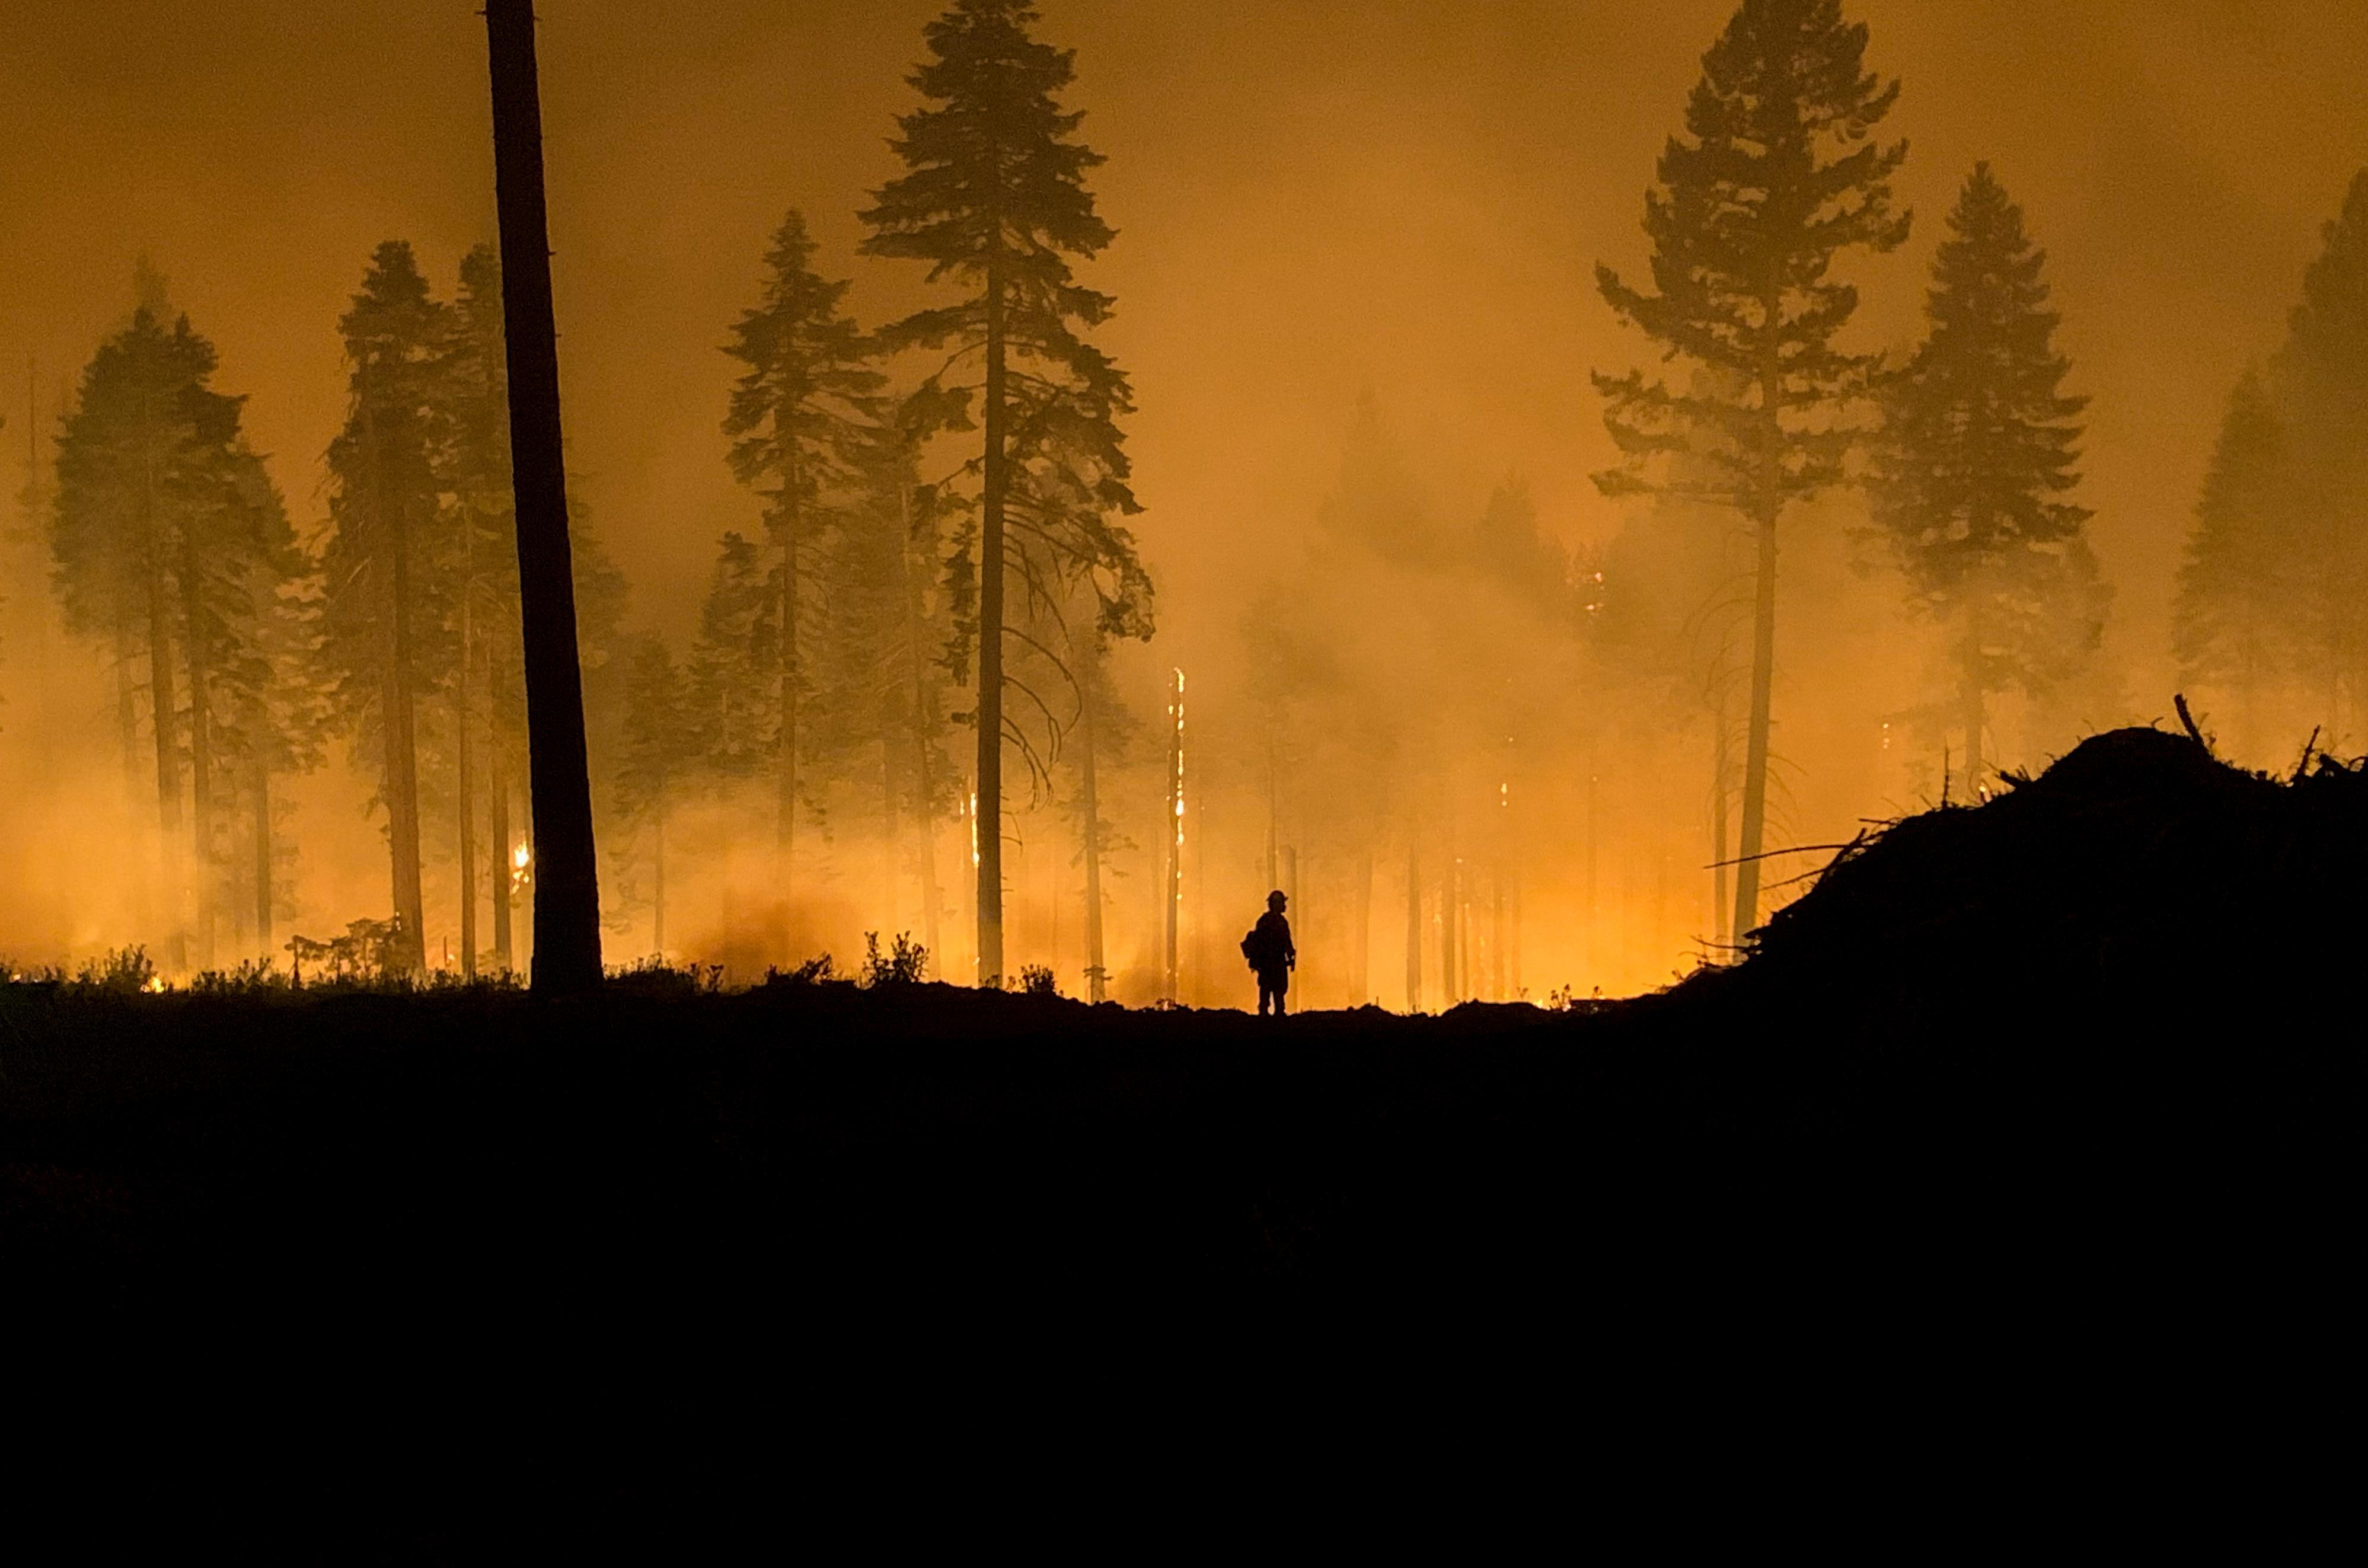 A silhouette of a firefighter on the fireline with flames in the background